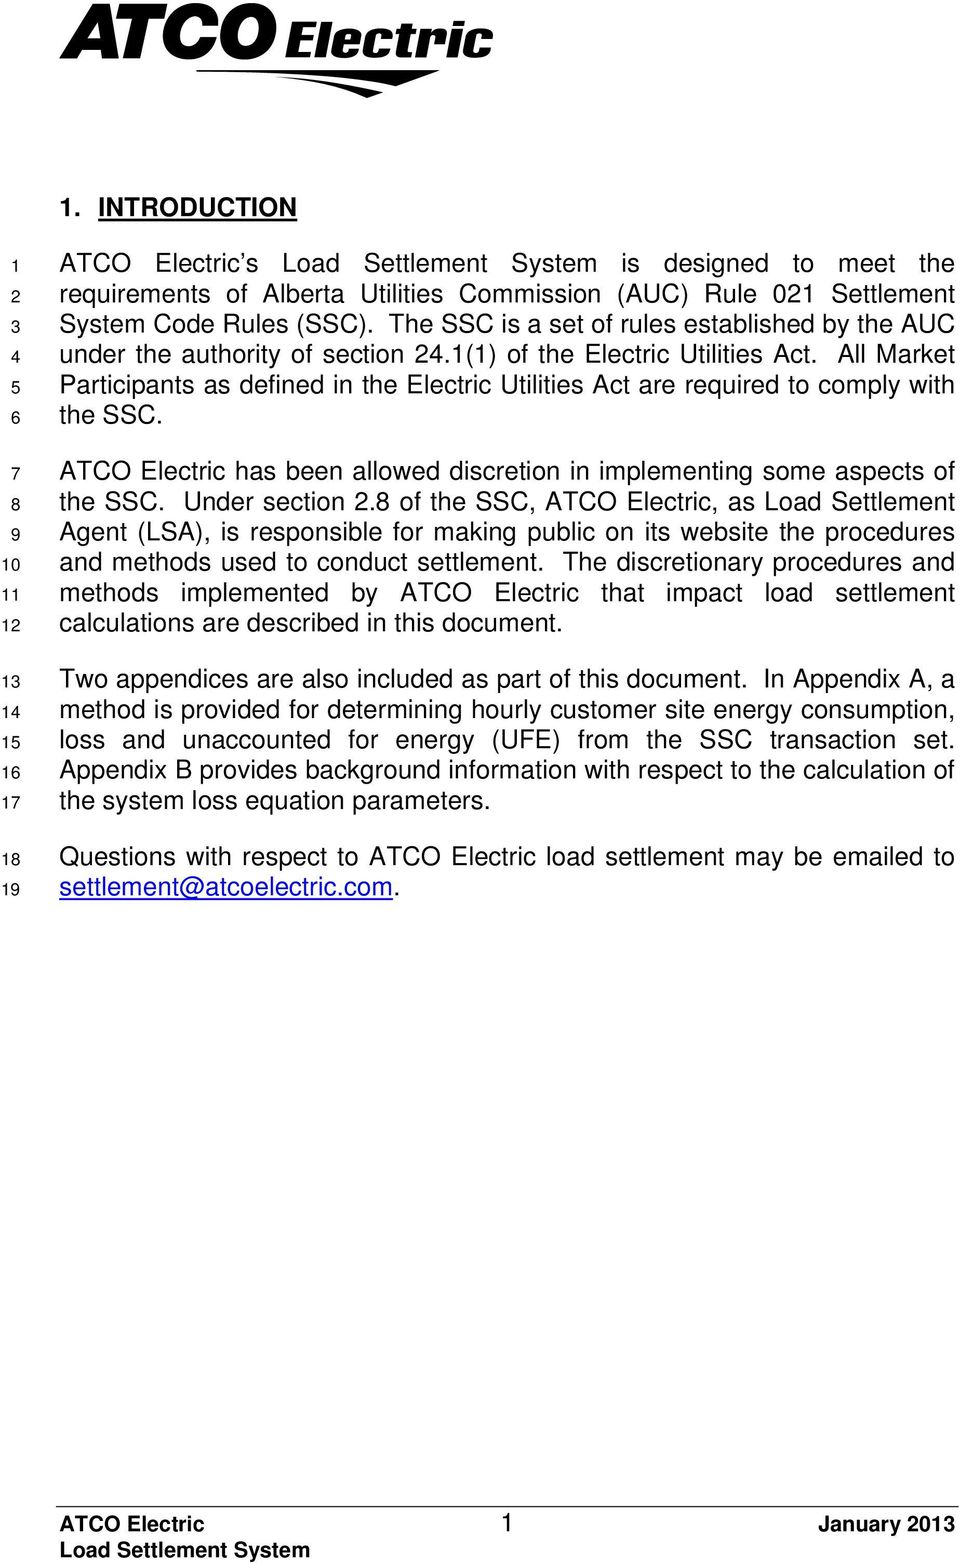 ATCO Electrc has been allowed dscreton n mplementng some aspects of the SSC. Under secton.